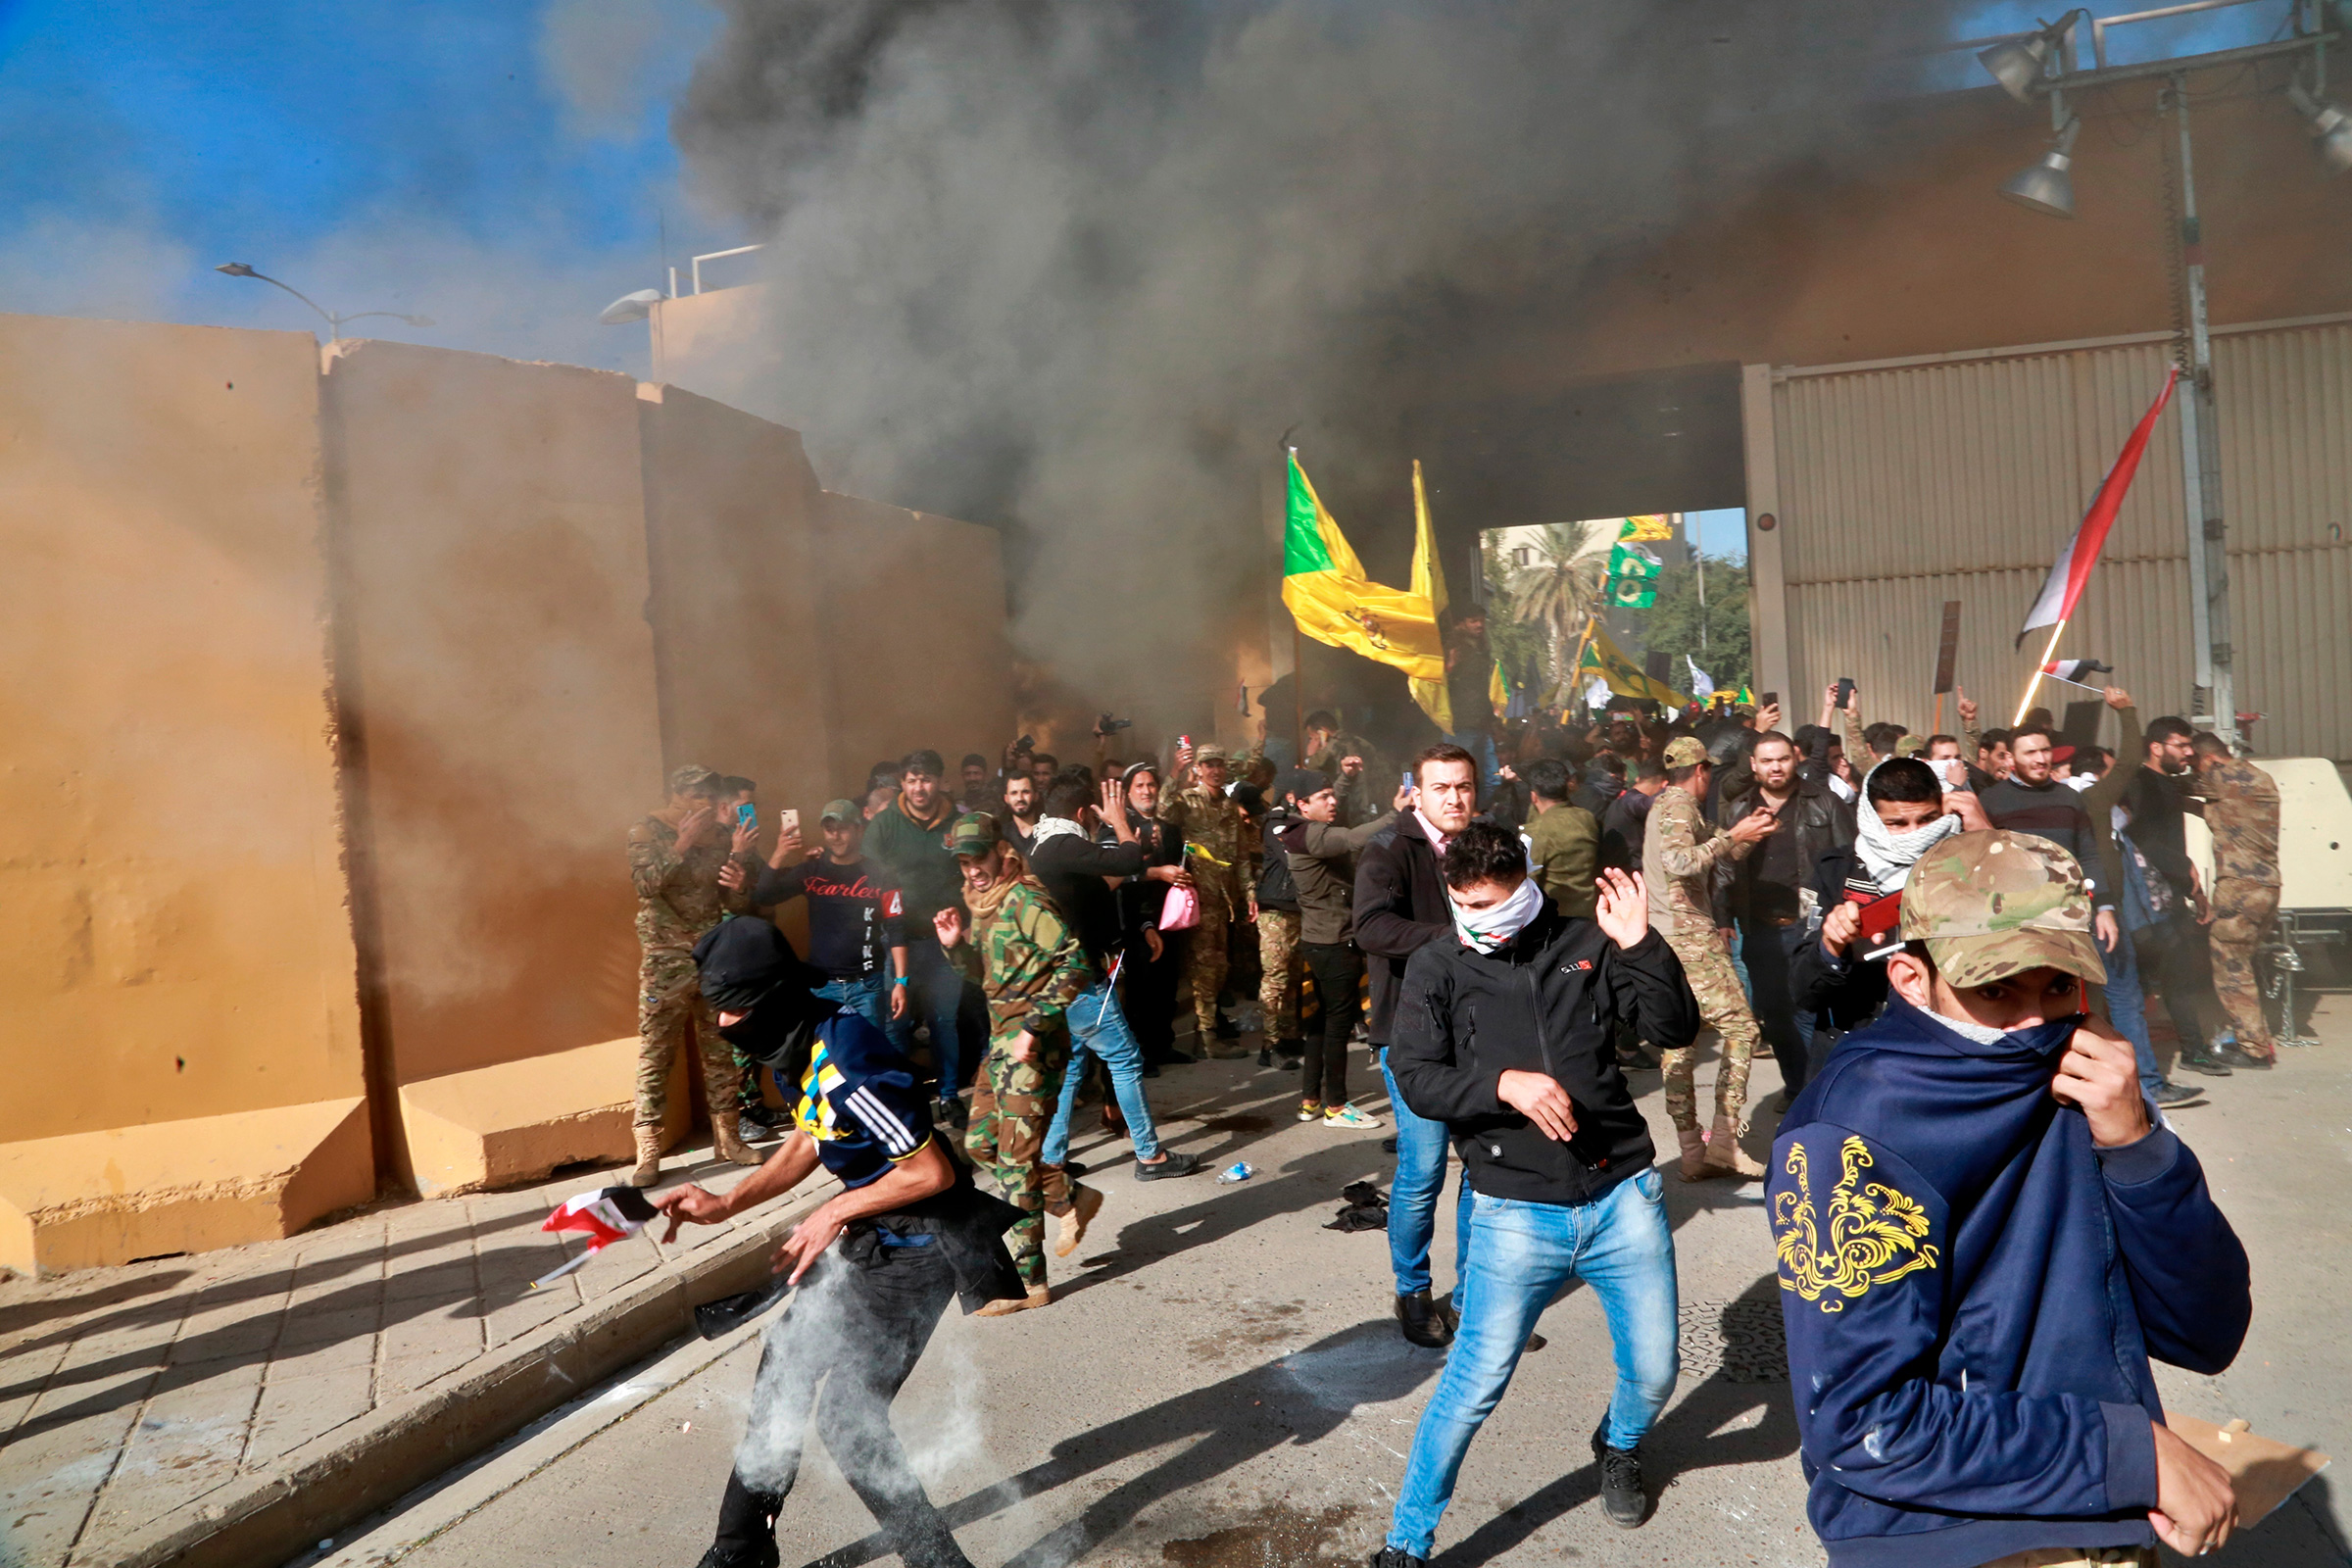 Protesters run from tear gas at the U.S. embassy compound in Baghdad, Dec. 31, 2019.